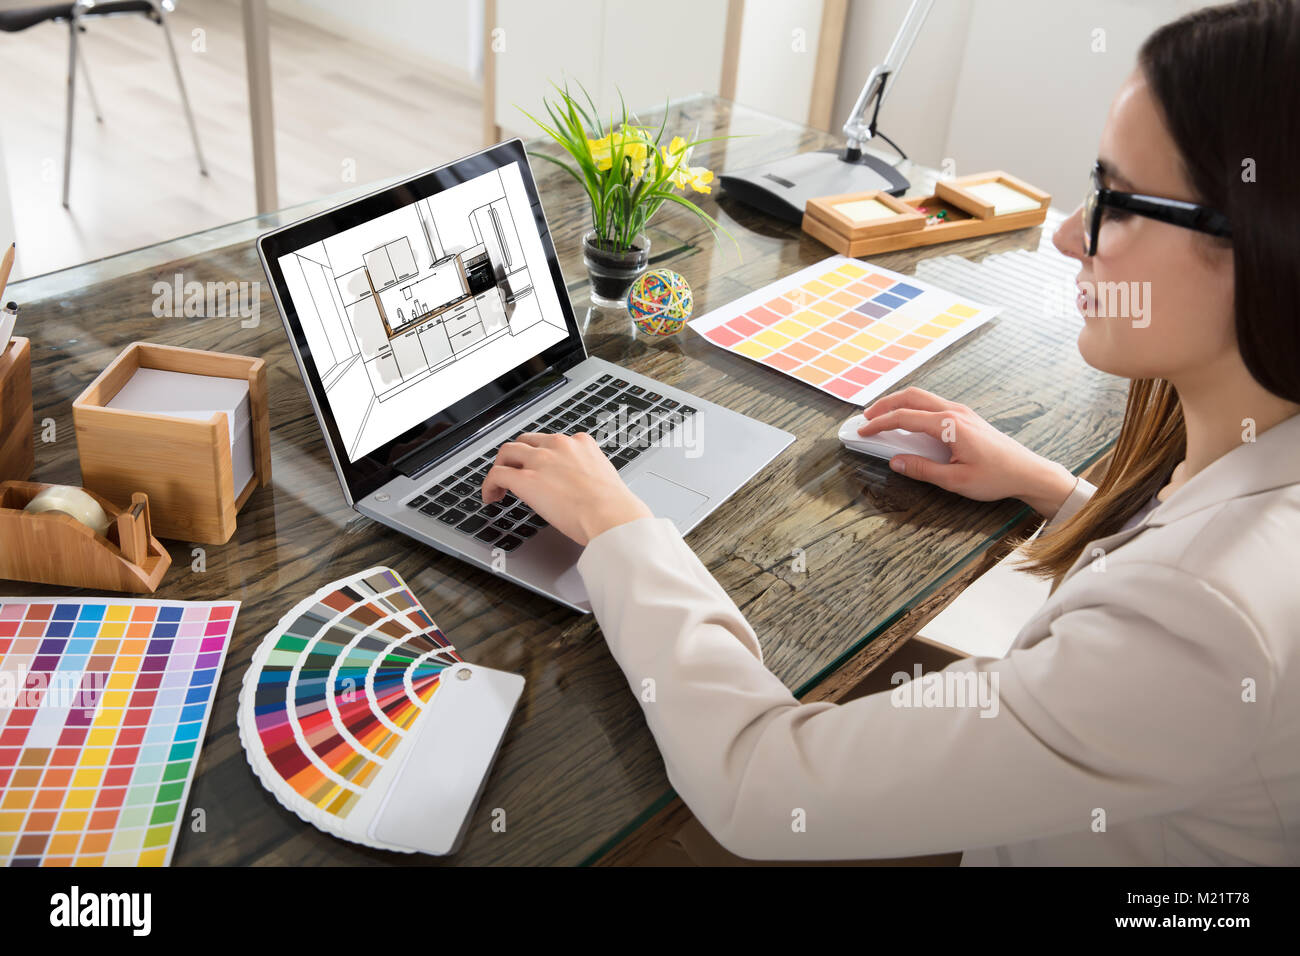 An Female Architect Working On Color Selection For The Kitchen Drawing On Laptop Screen Stock Photo